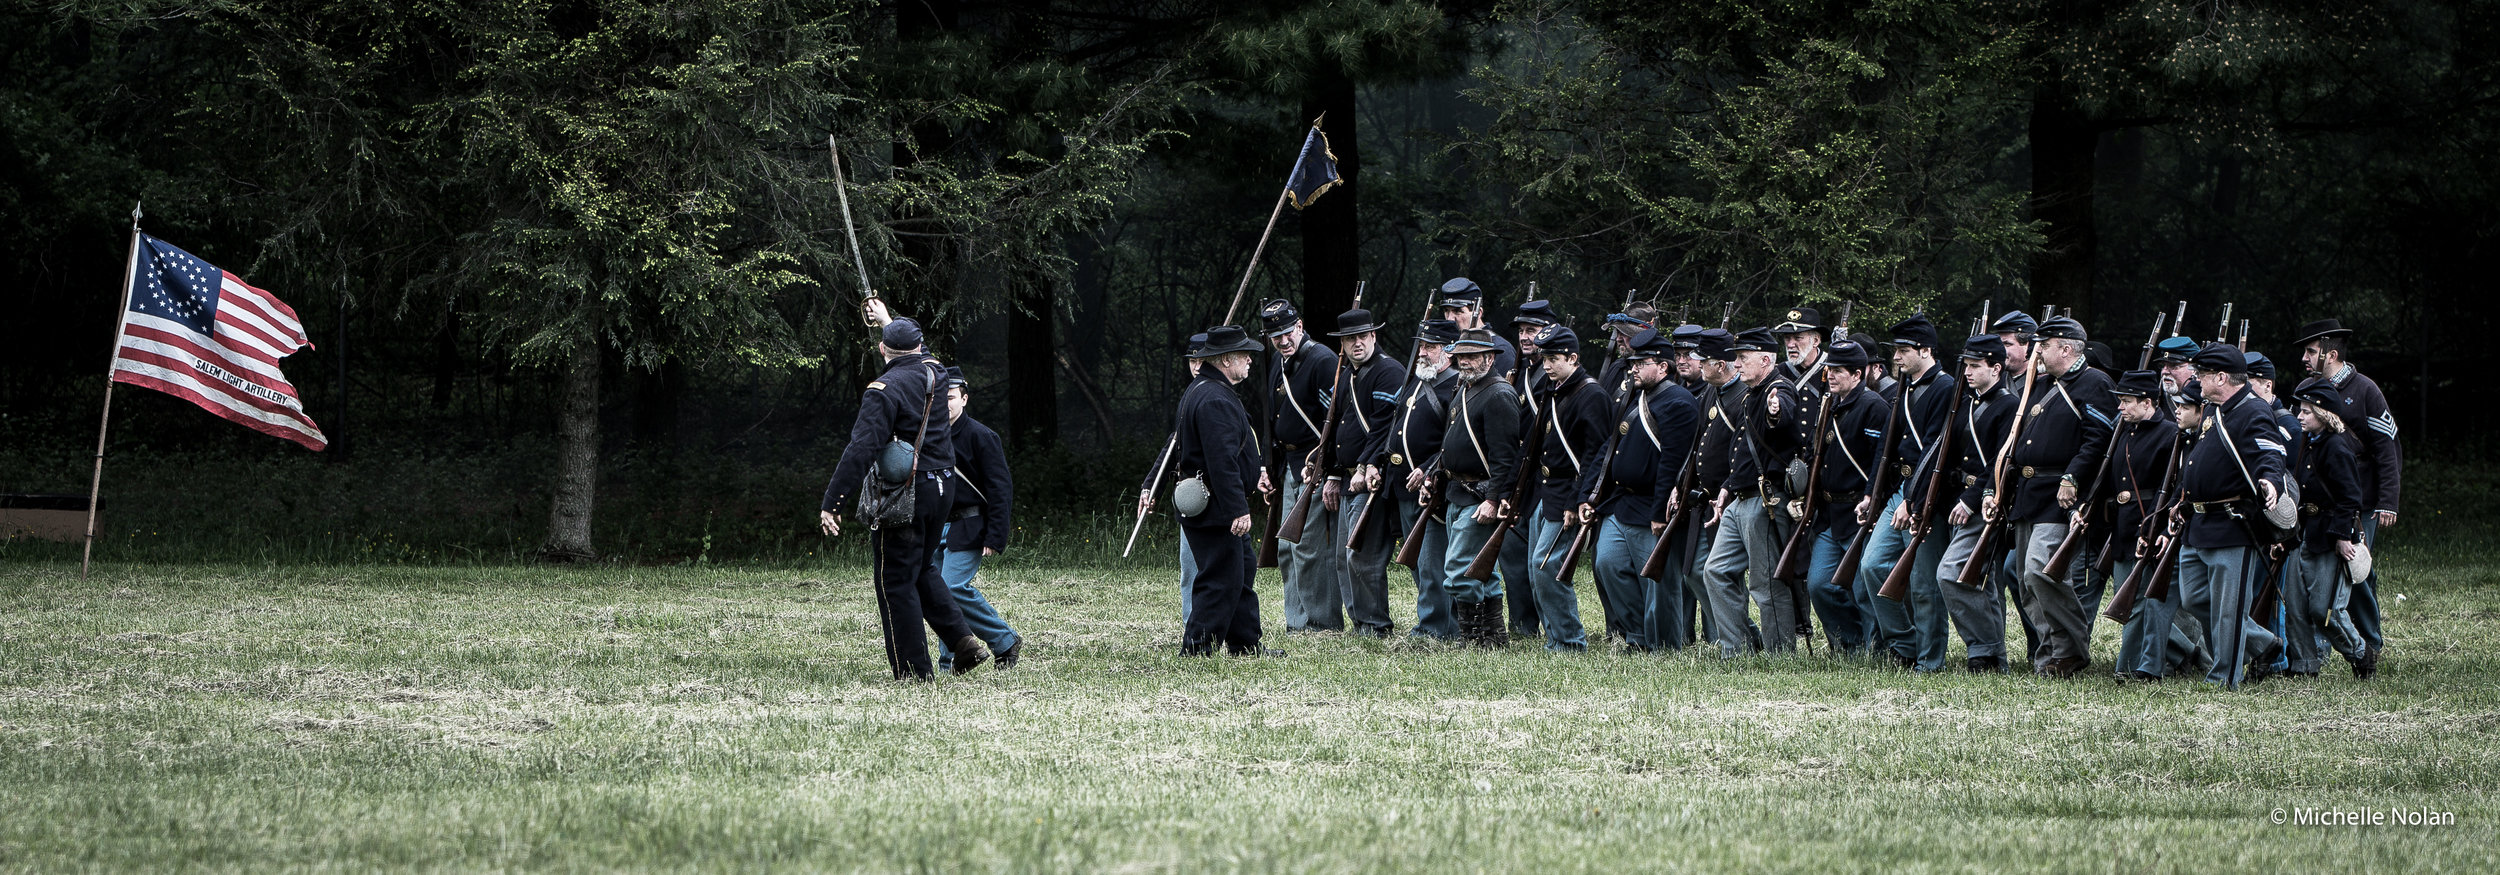 2017.05.06_Carroll County Civil War-81.jpg